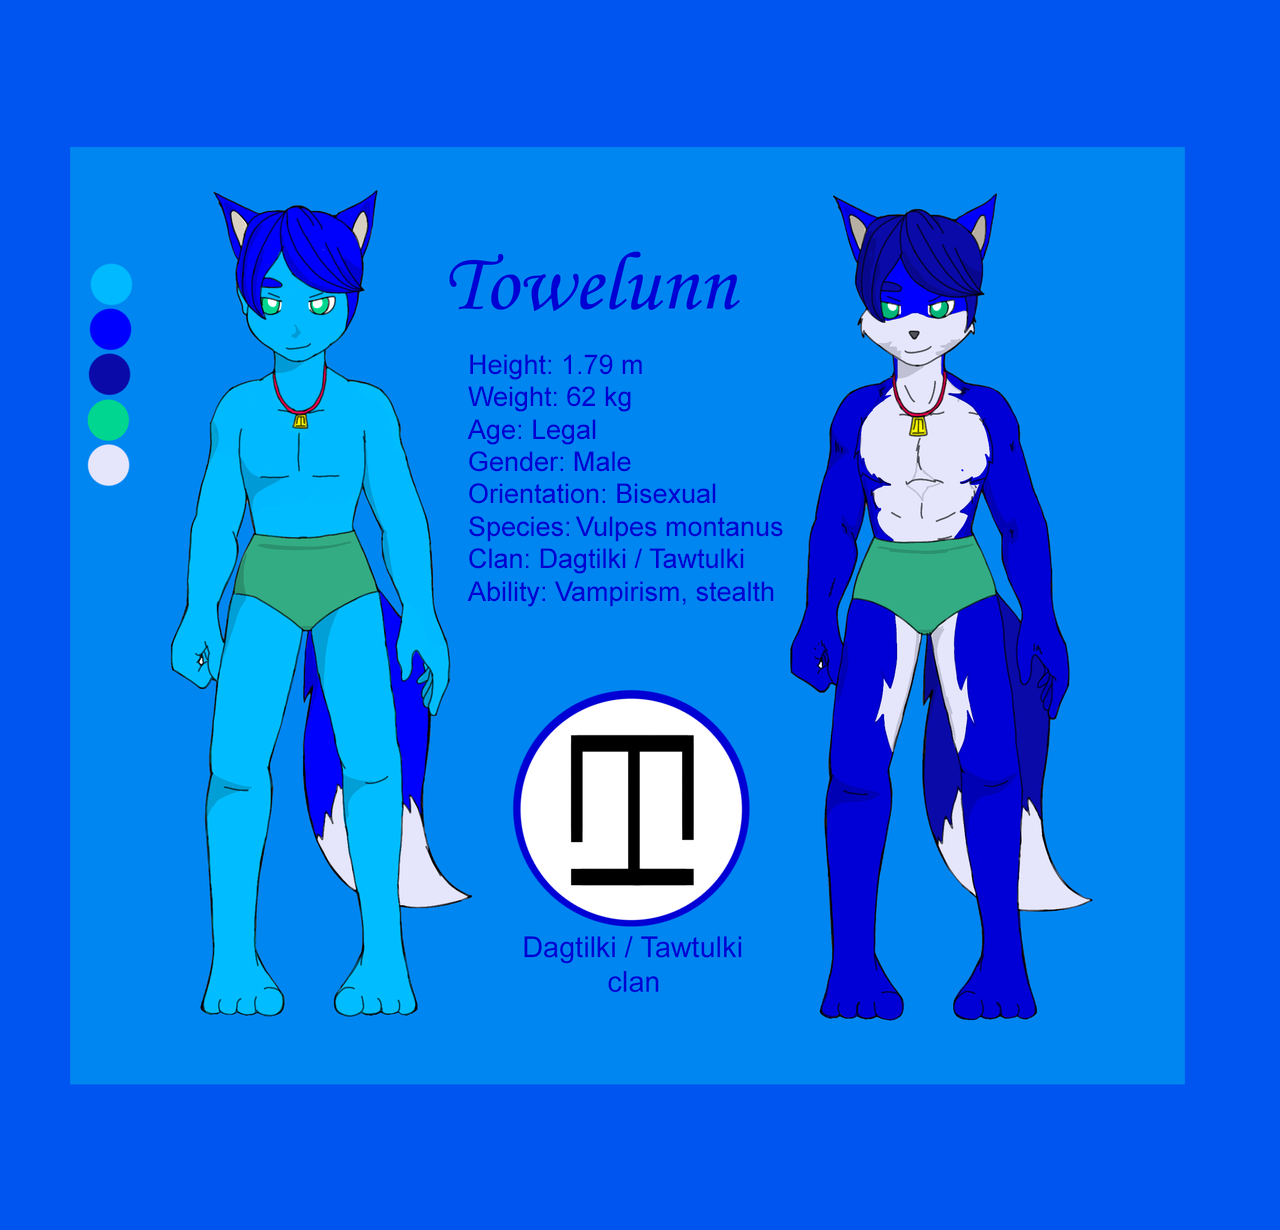 towelunn_by_dagtilki-dcg677s.png